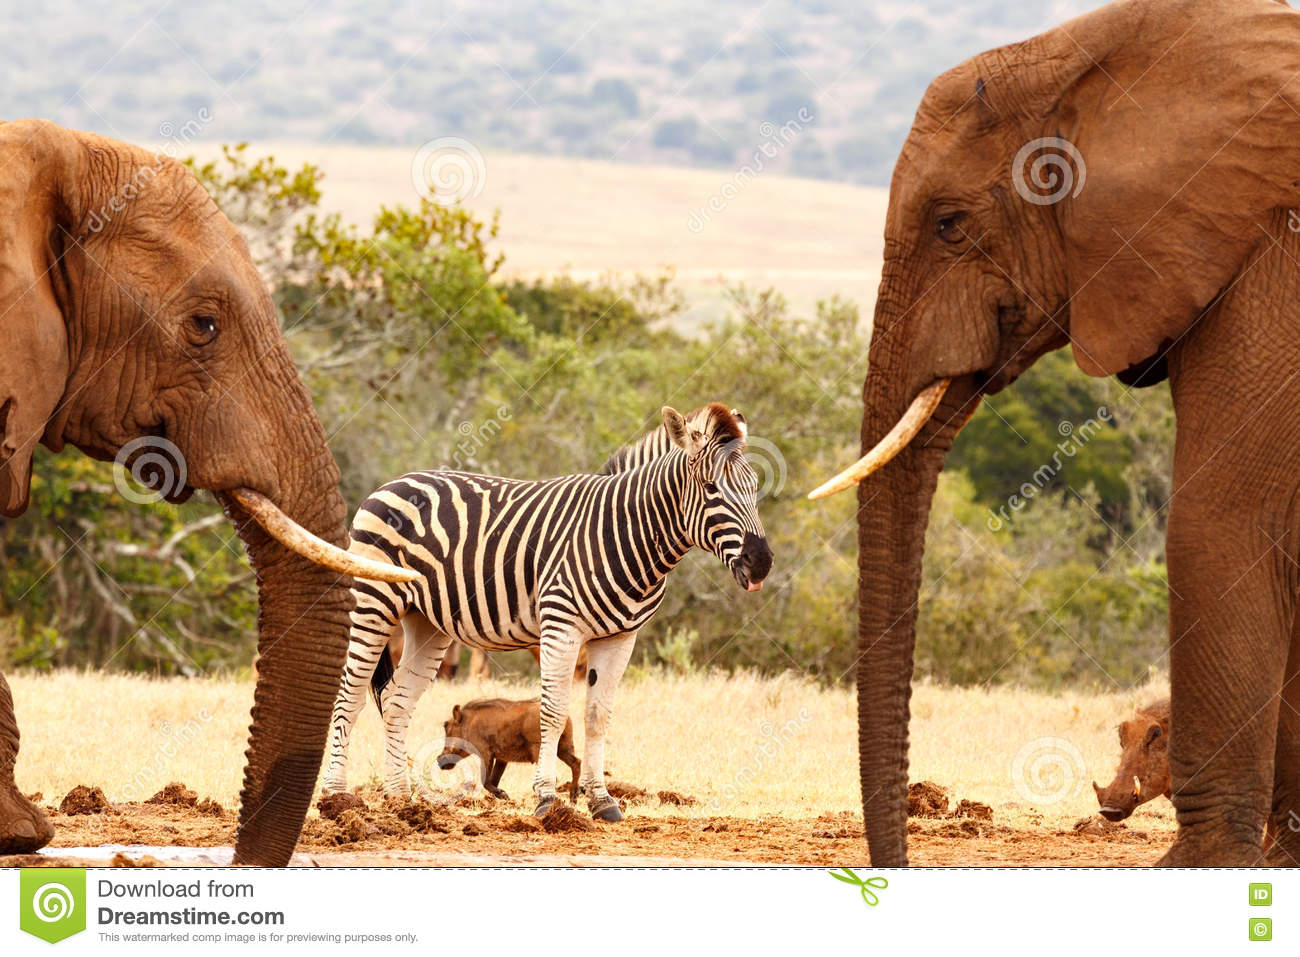 Bush elephants drinking water while a thirsty Zebra standing on